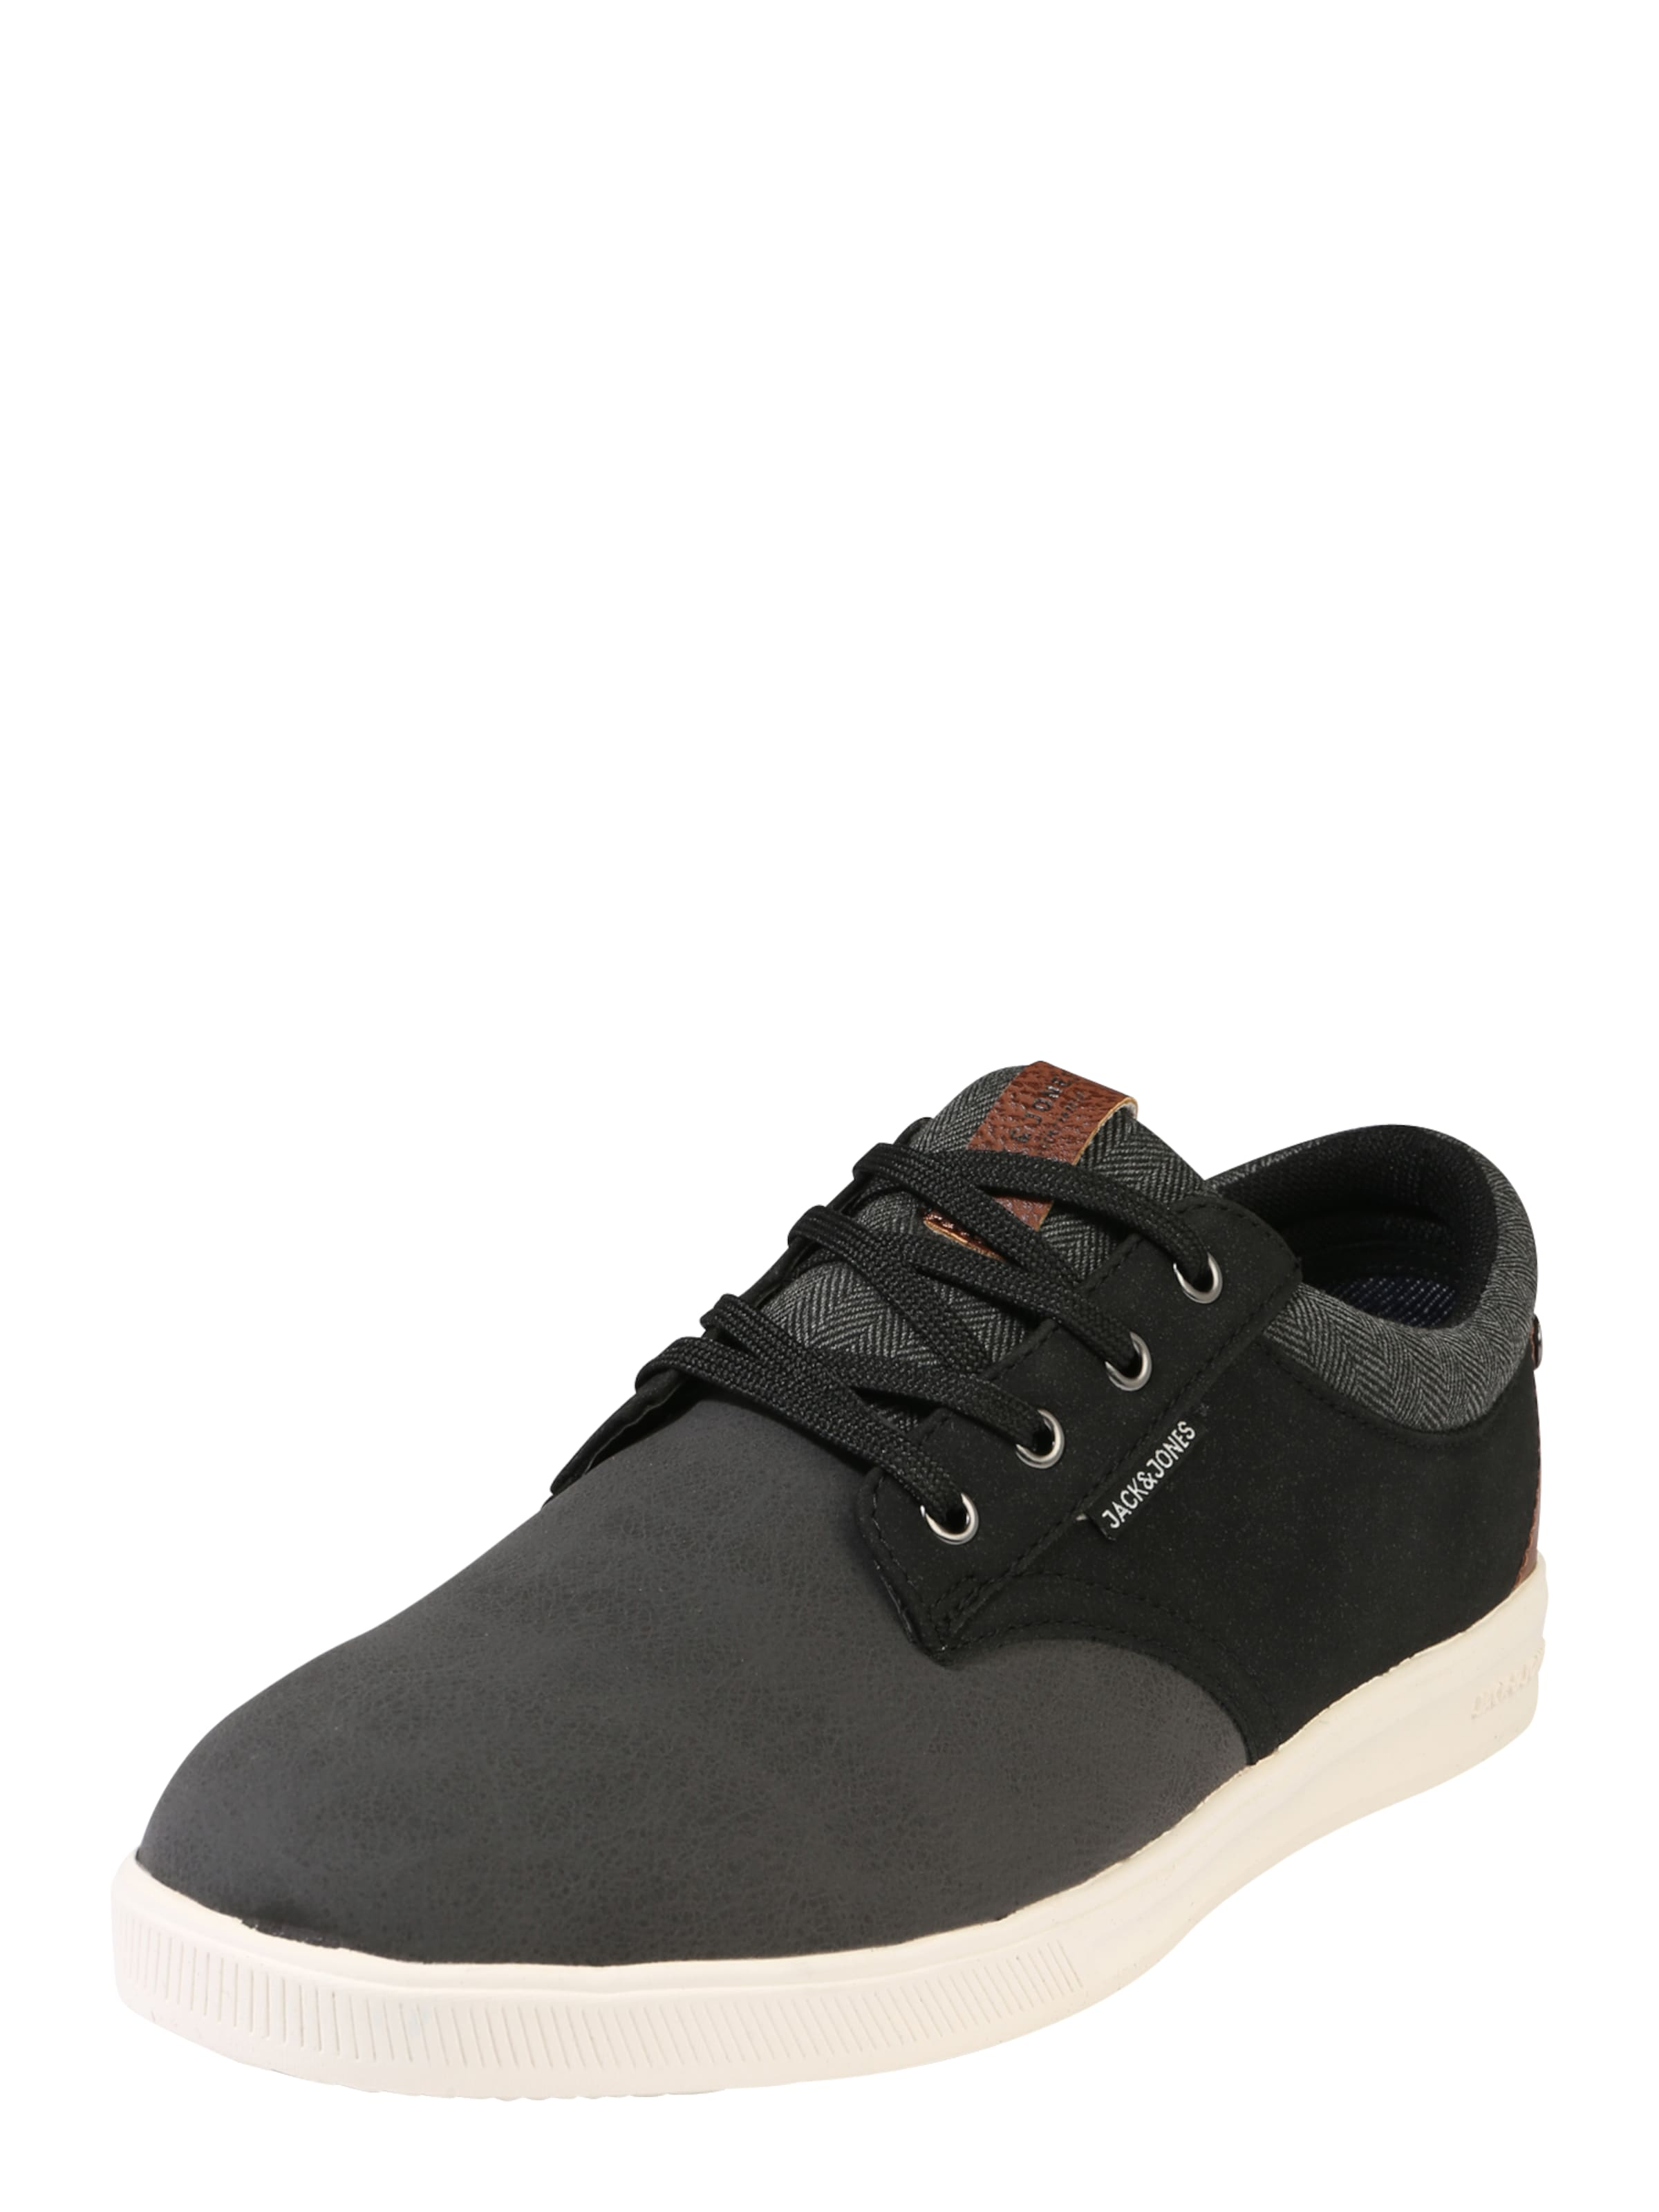 JACK & JONES Sneaker  GASTON